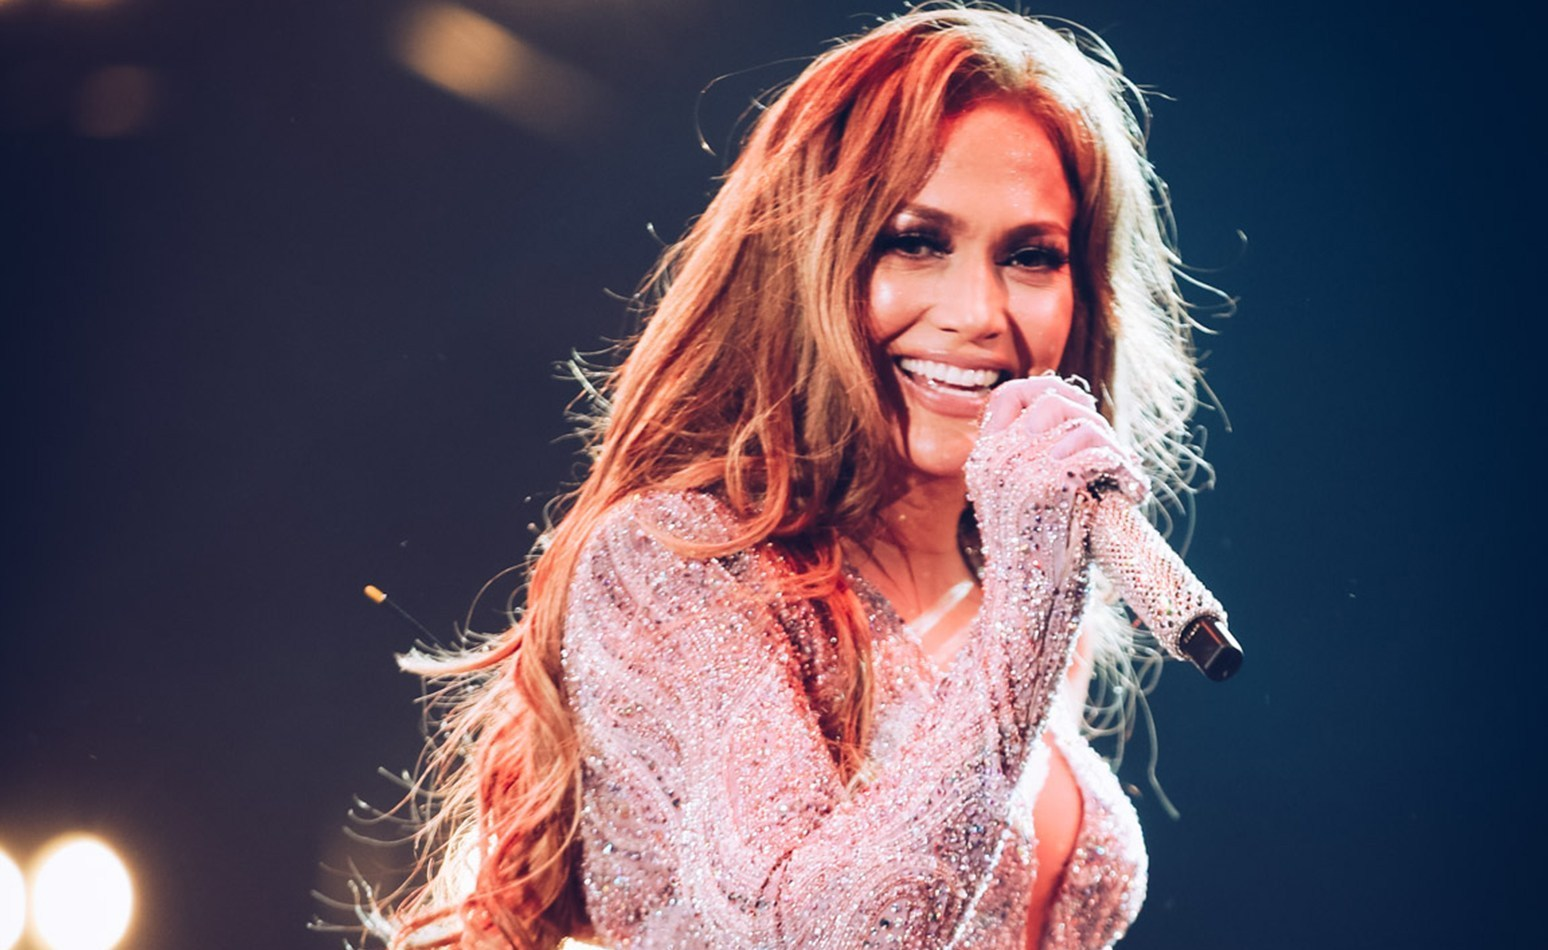 Watch: J-Lo Shares Excitement About Performing in Egypt